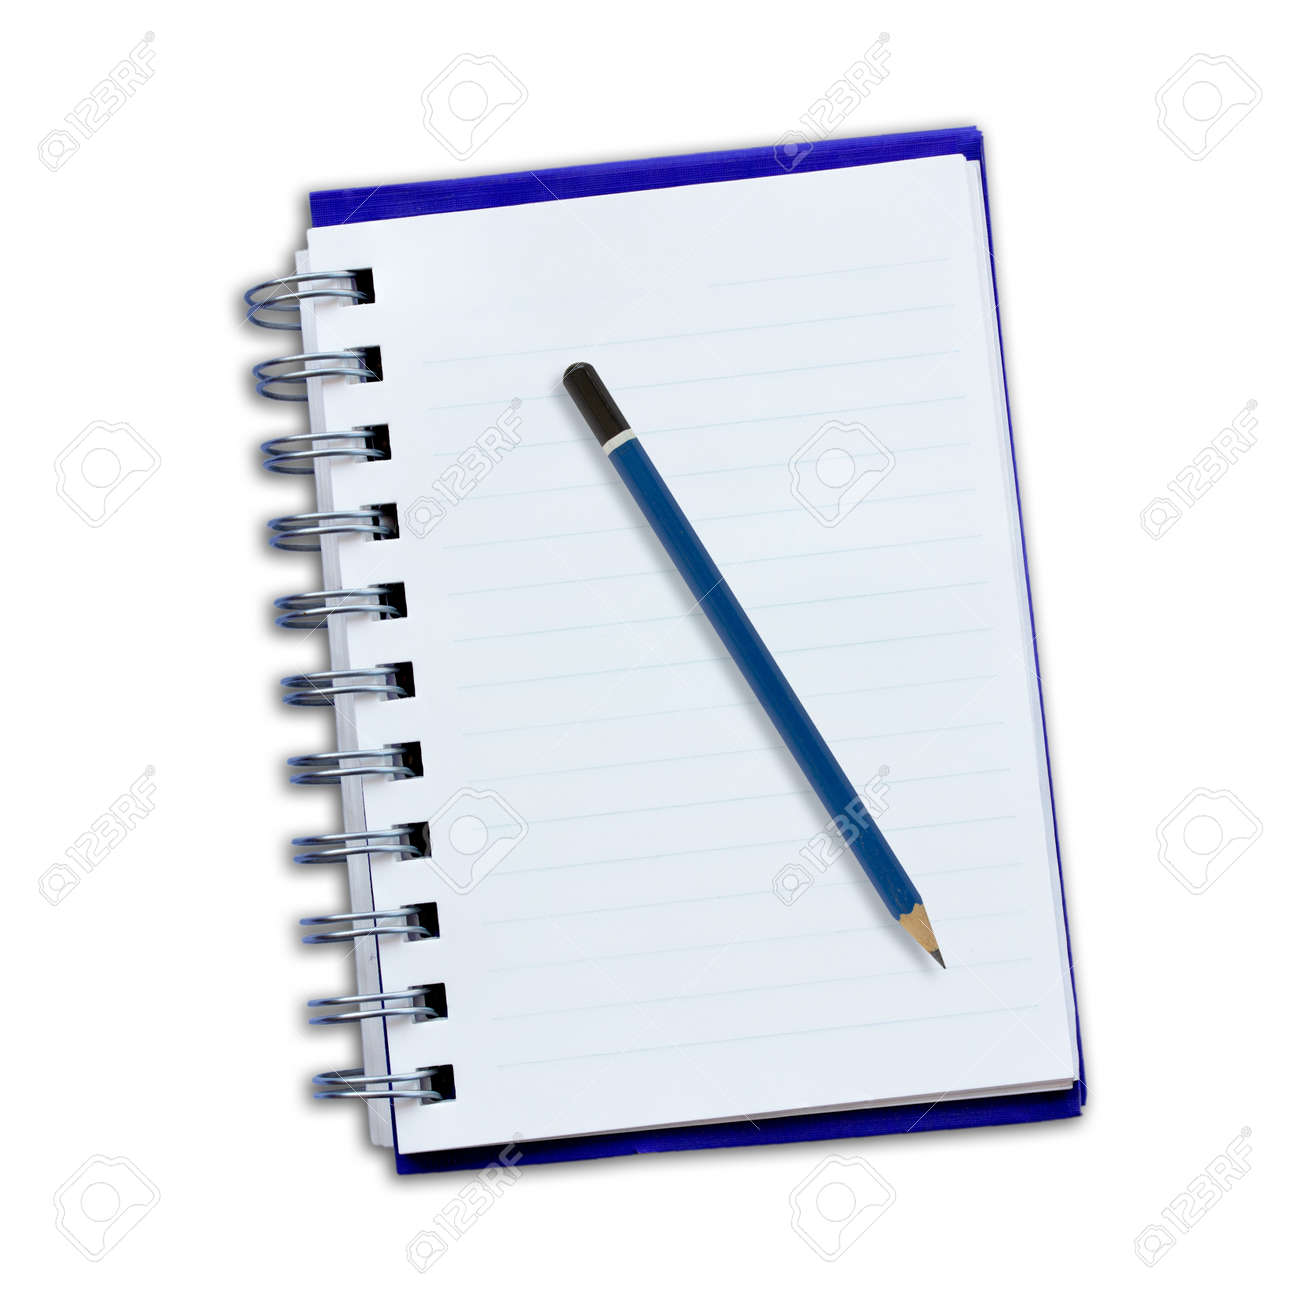 Notepad and pencil on a white background. Stock Photo - 16852832